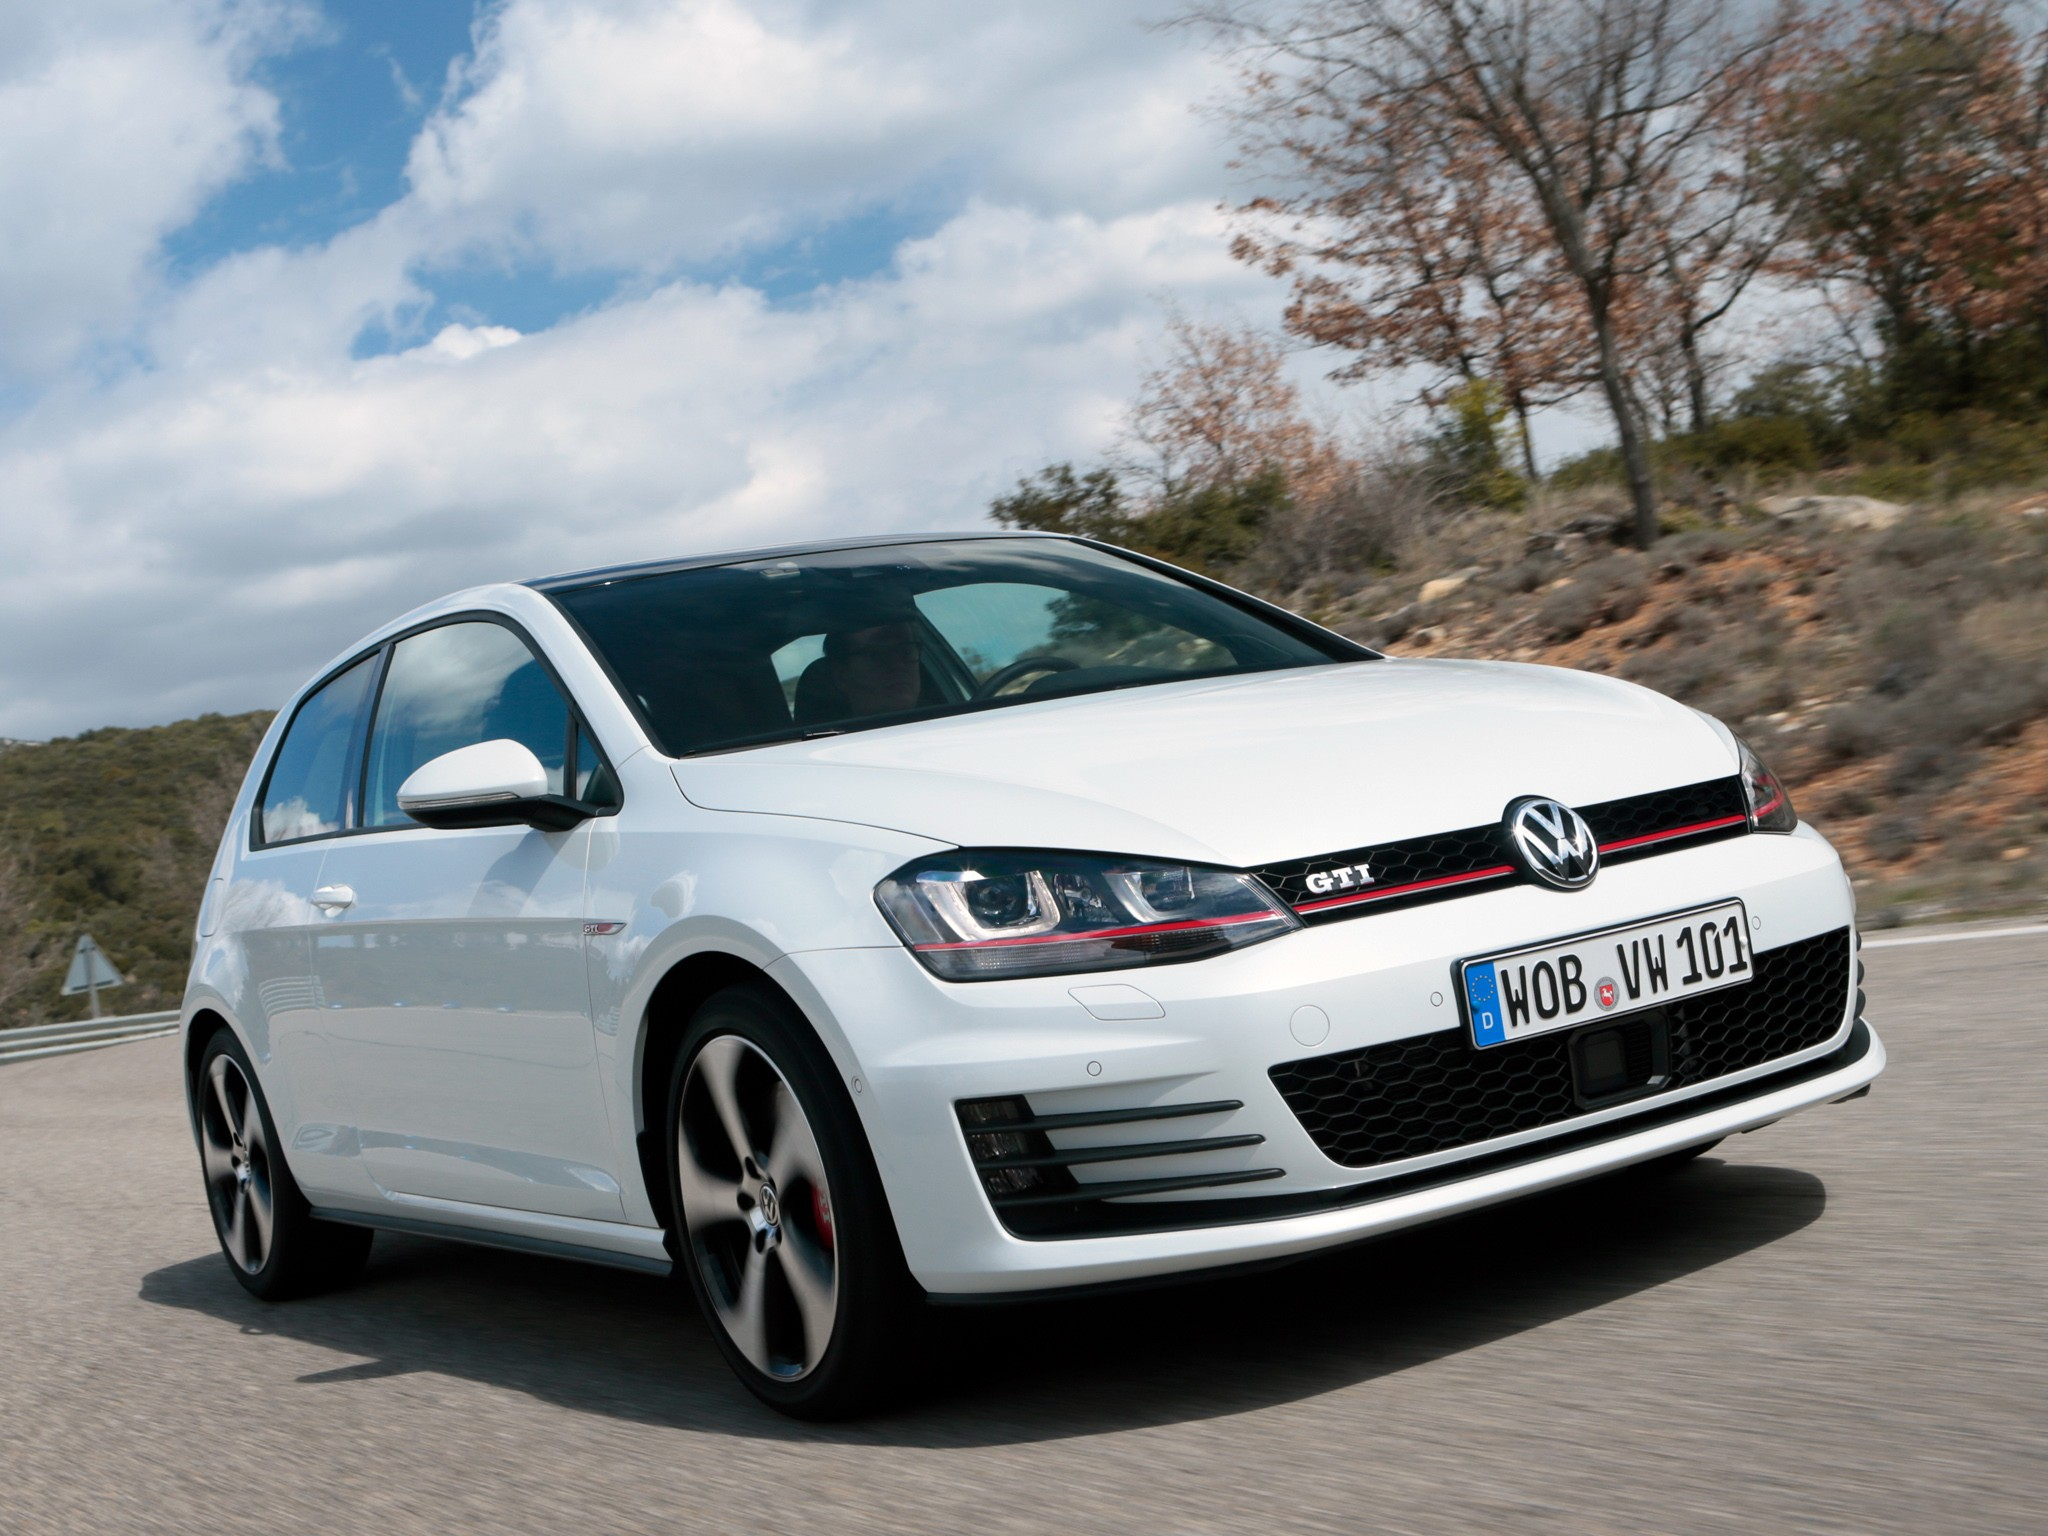 golf gti two door being discontinued for 2017 model year. Black Bedroom Furniture Sets. Home Design Ideas